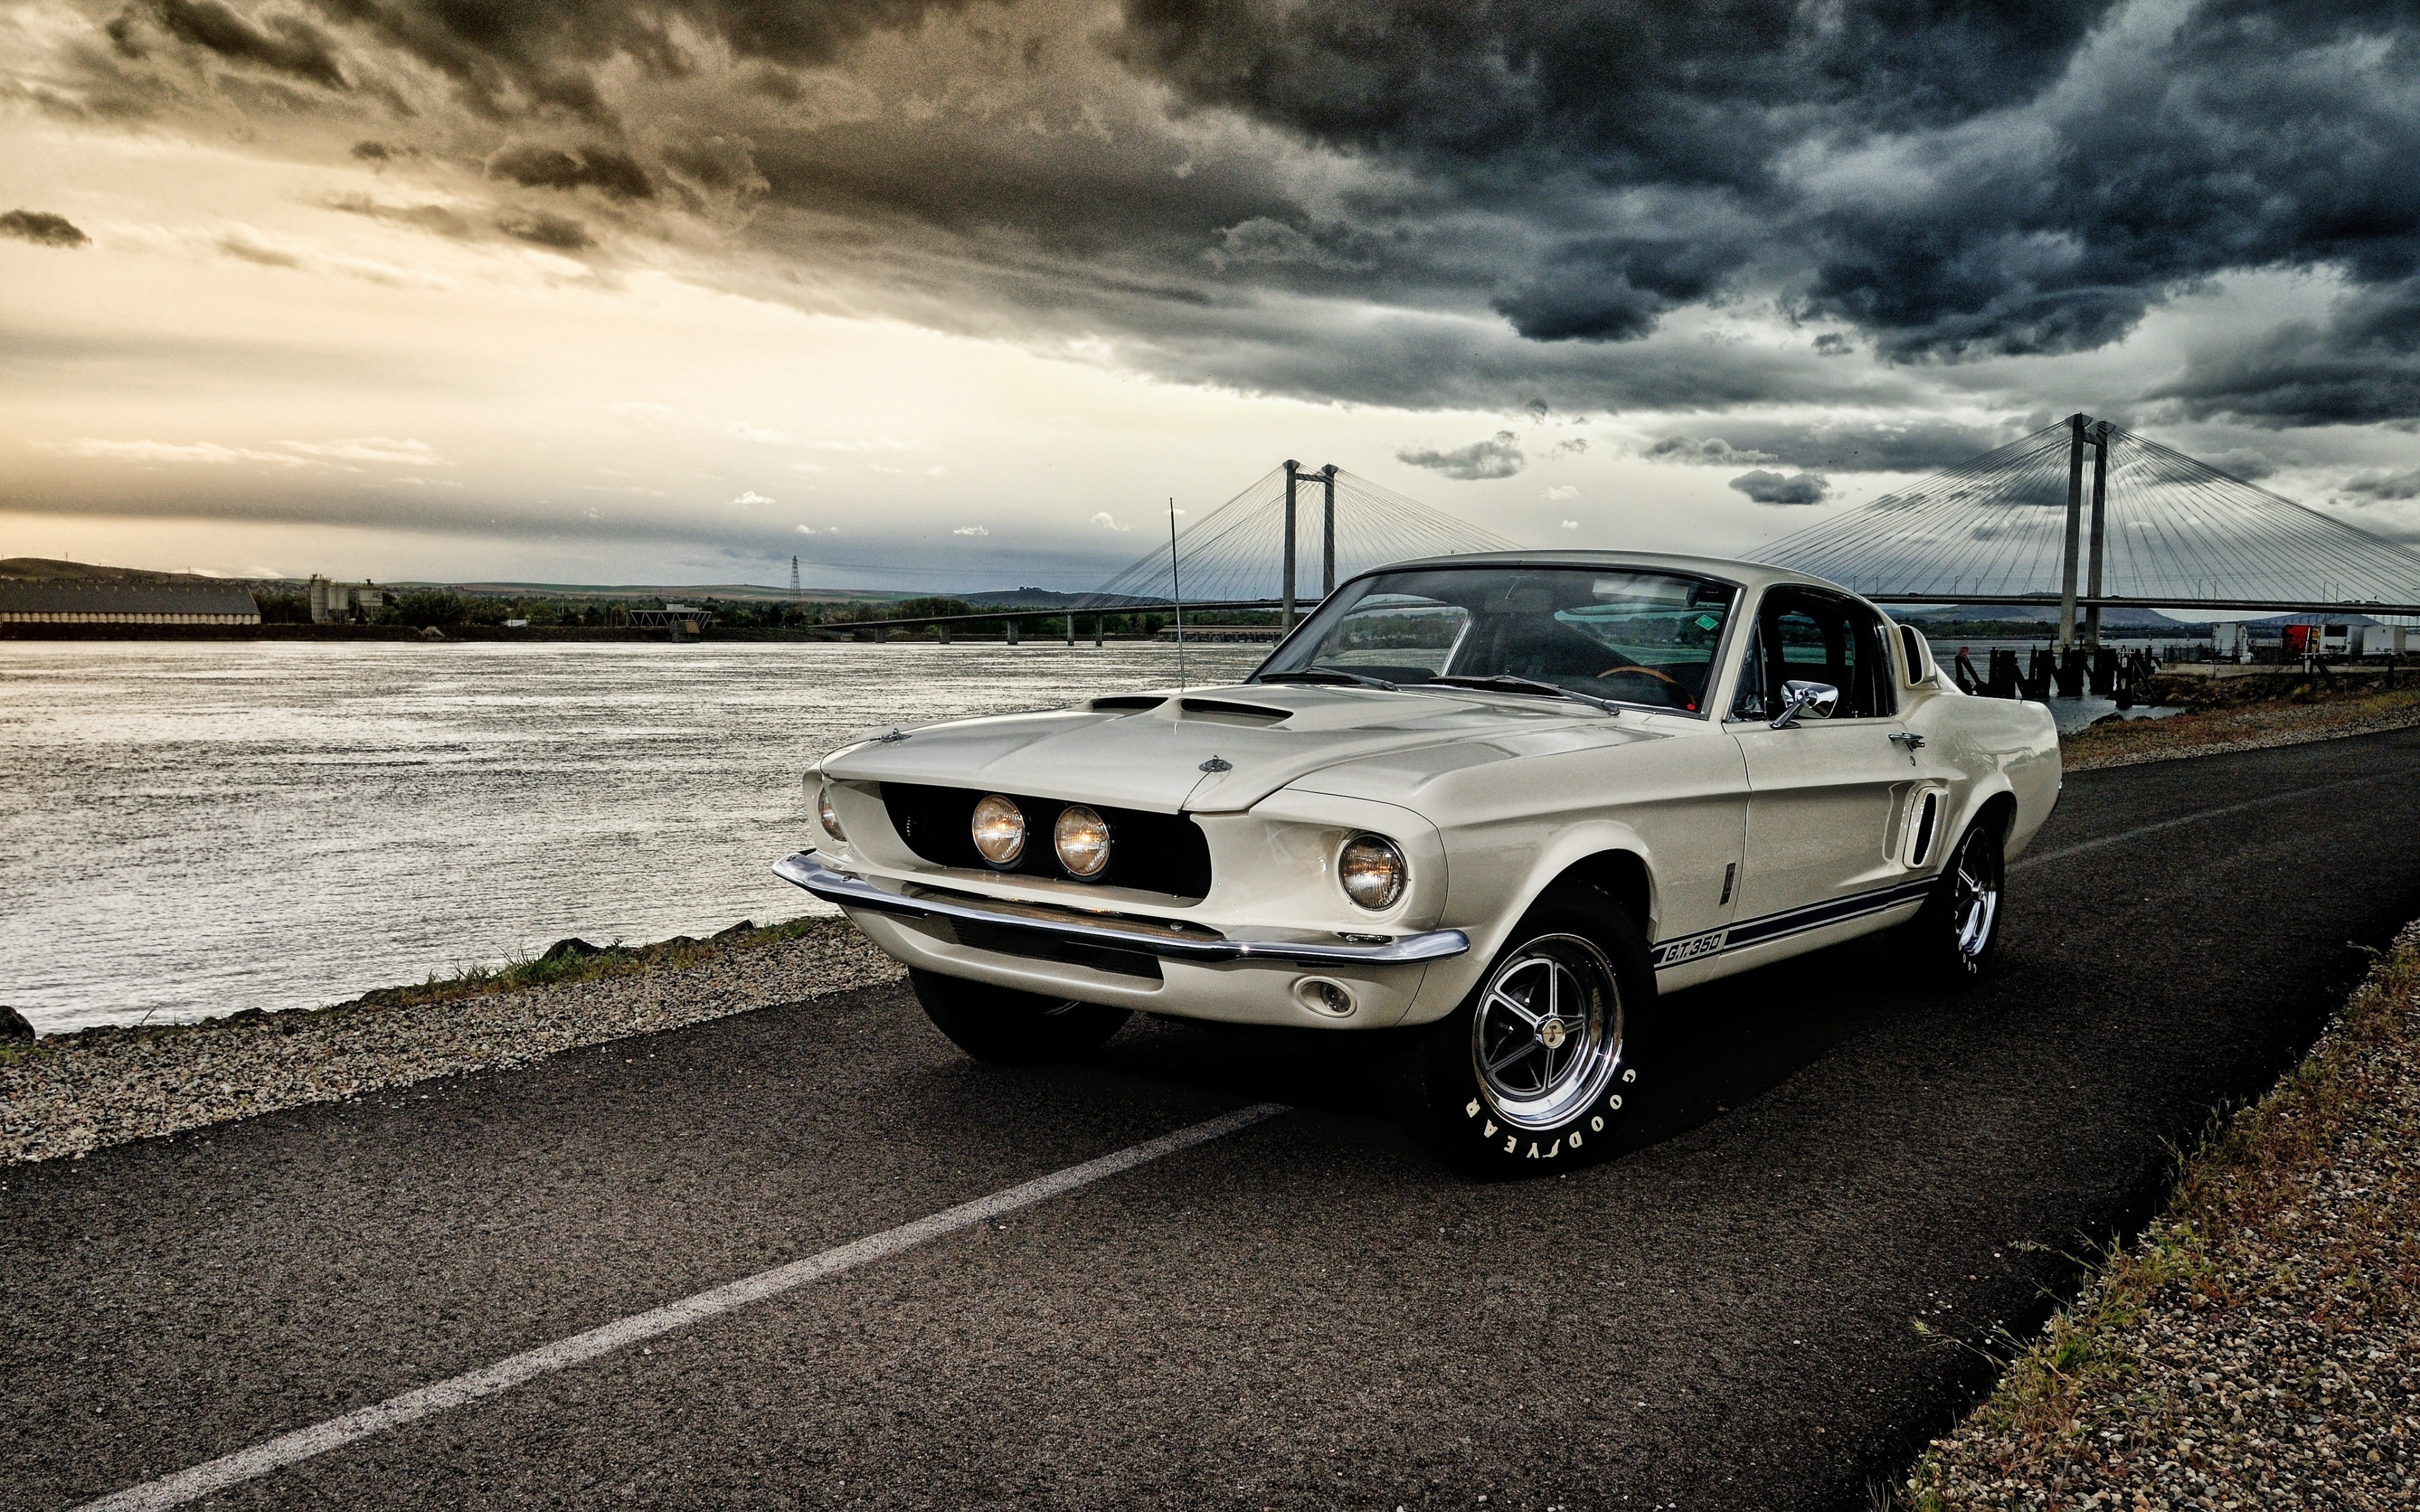 Download 3840x2400 wallpaper 1967 ford mustang shelby ...